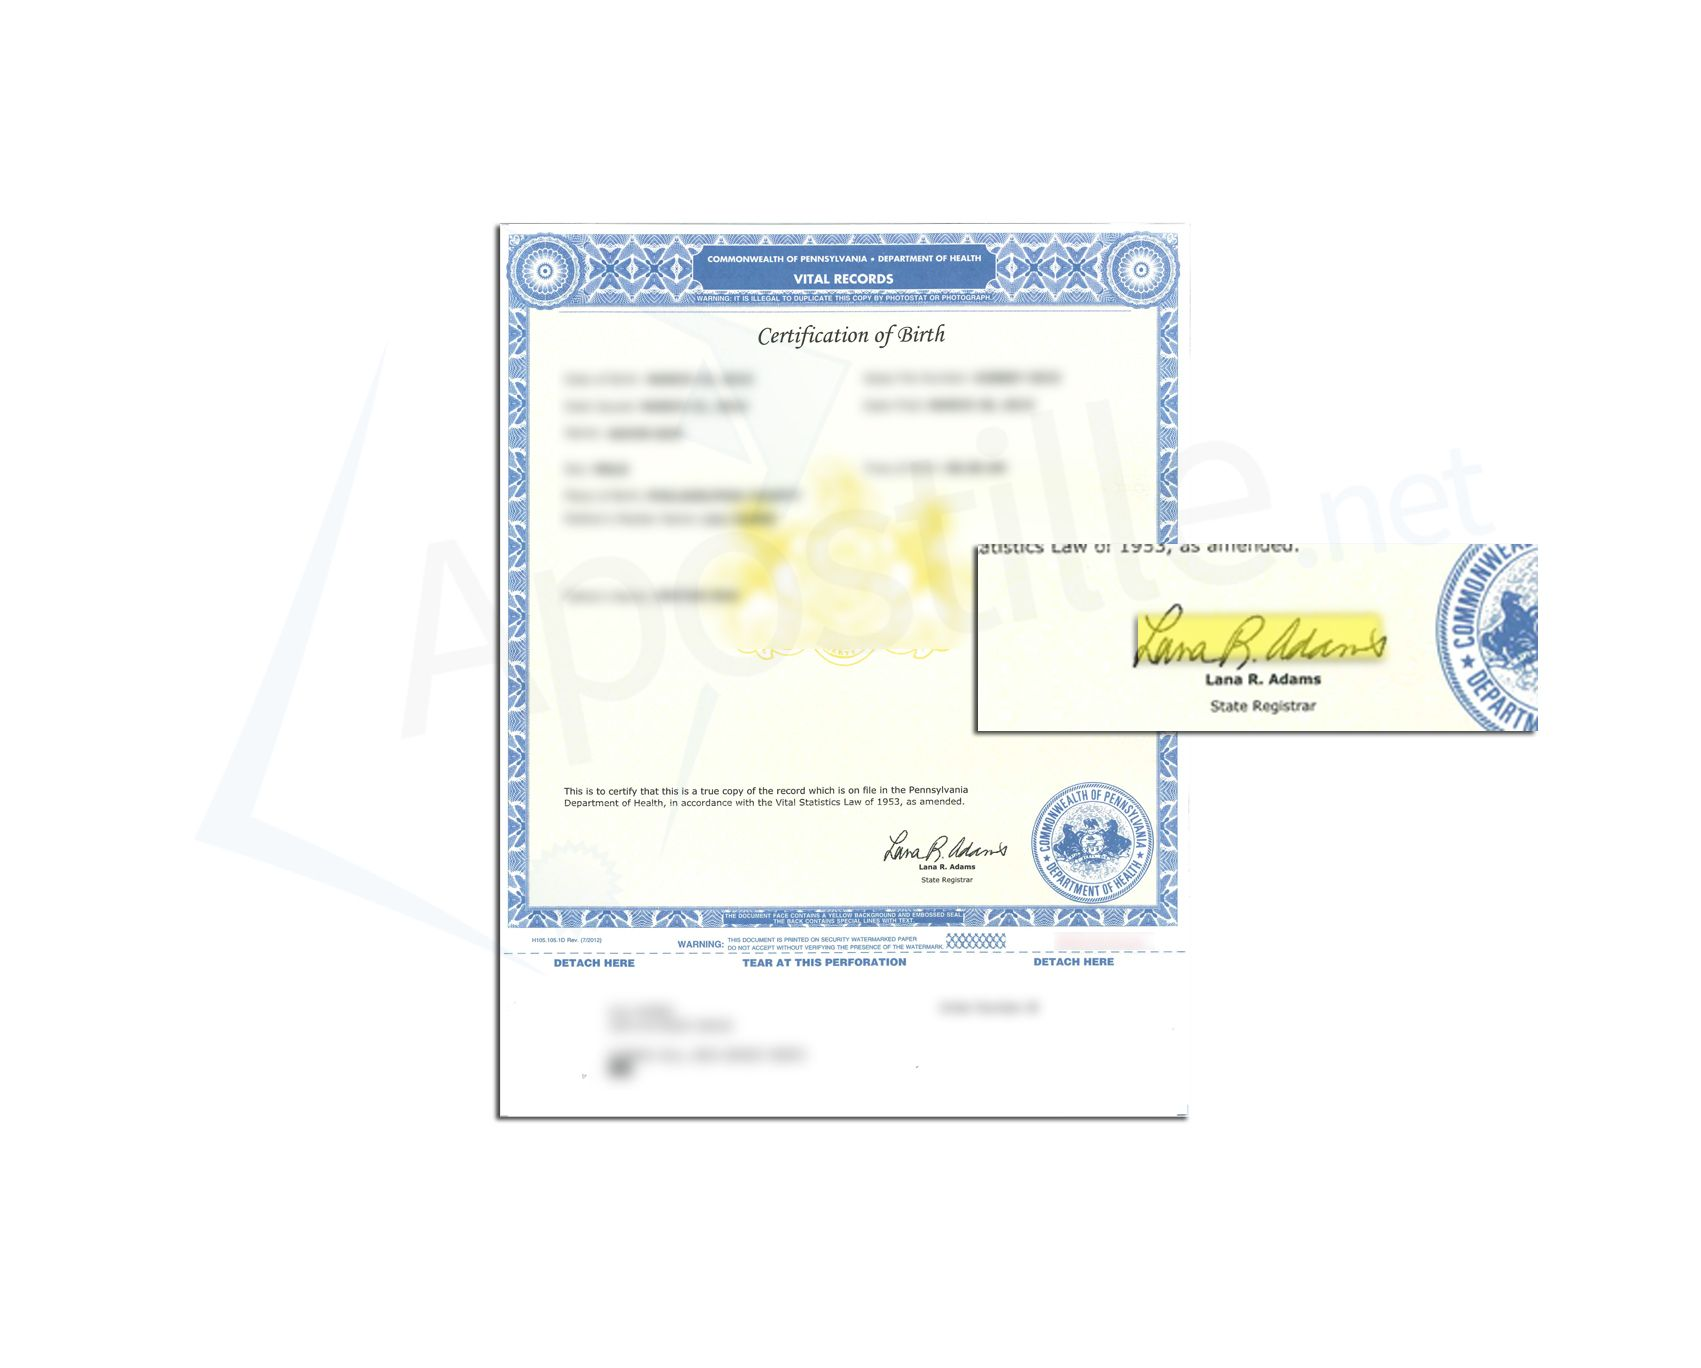 State Of Pennsylvania Certification Of Birth Issued By Lana R Adams